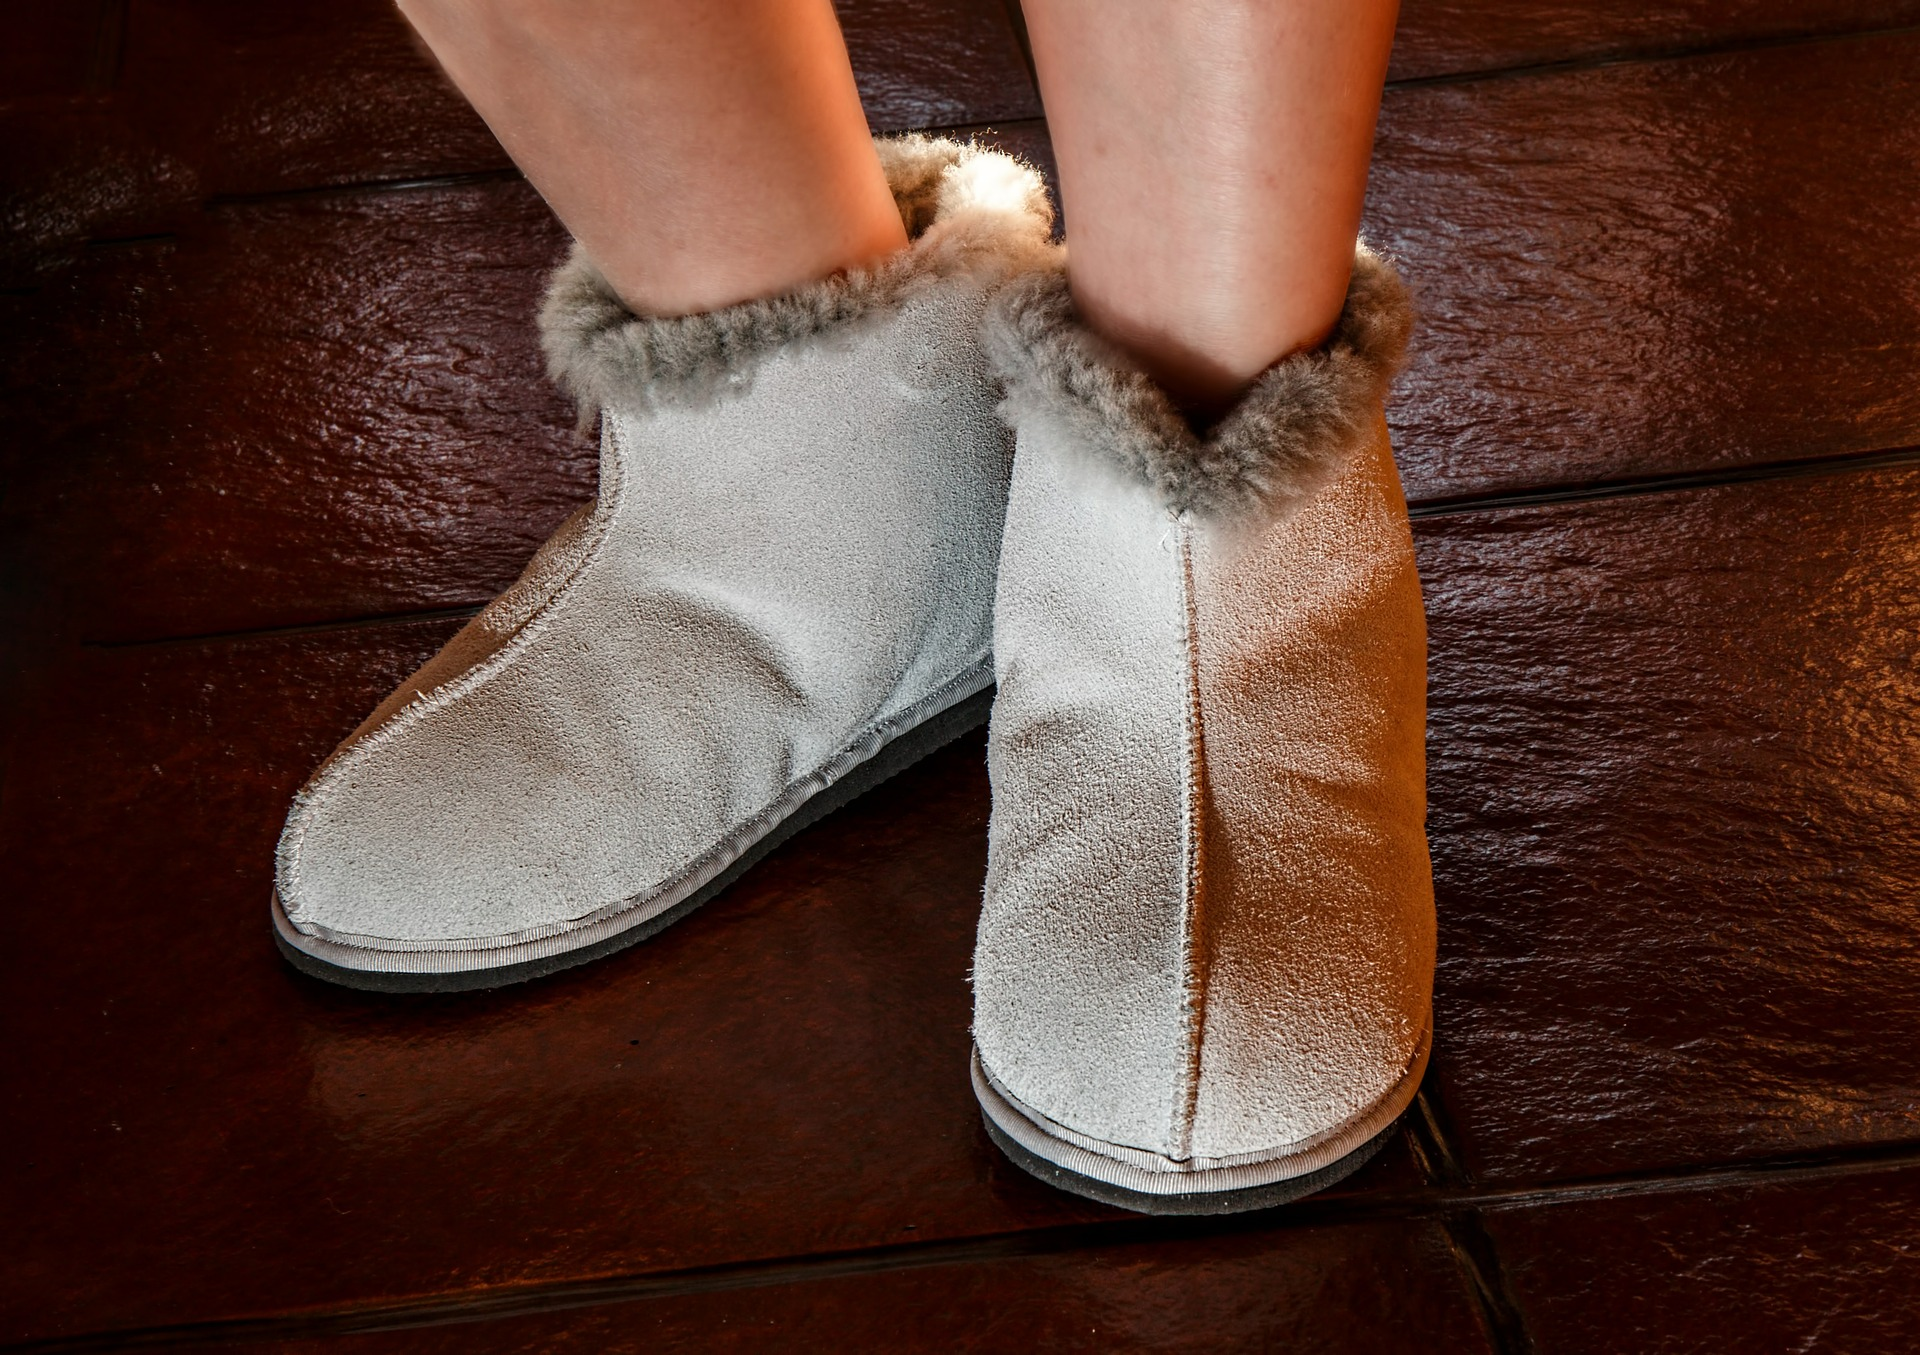 sheepskin-slippers-444181_1920